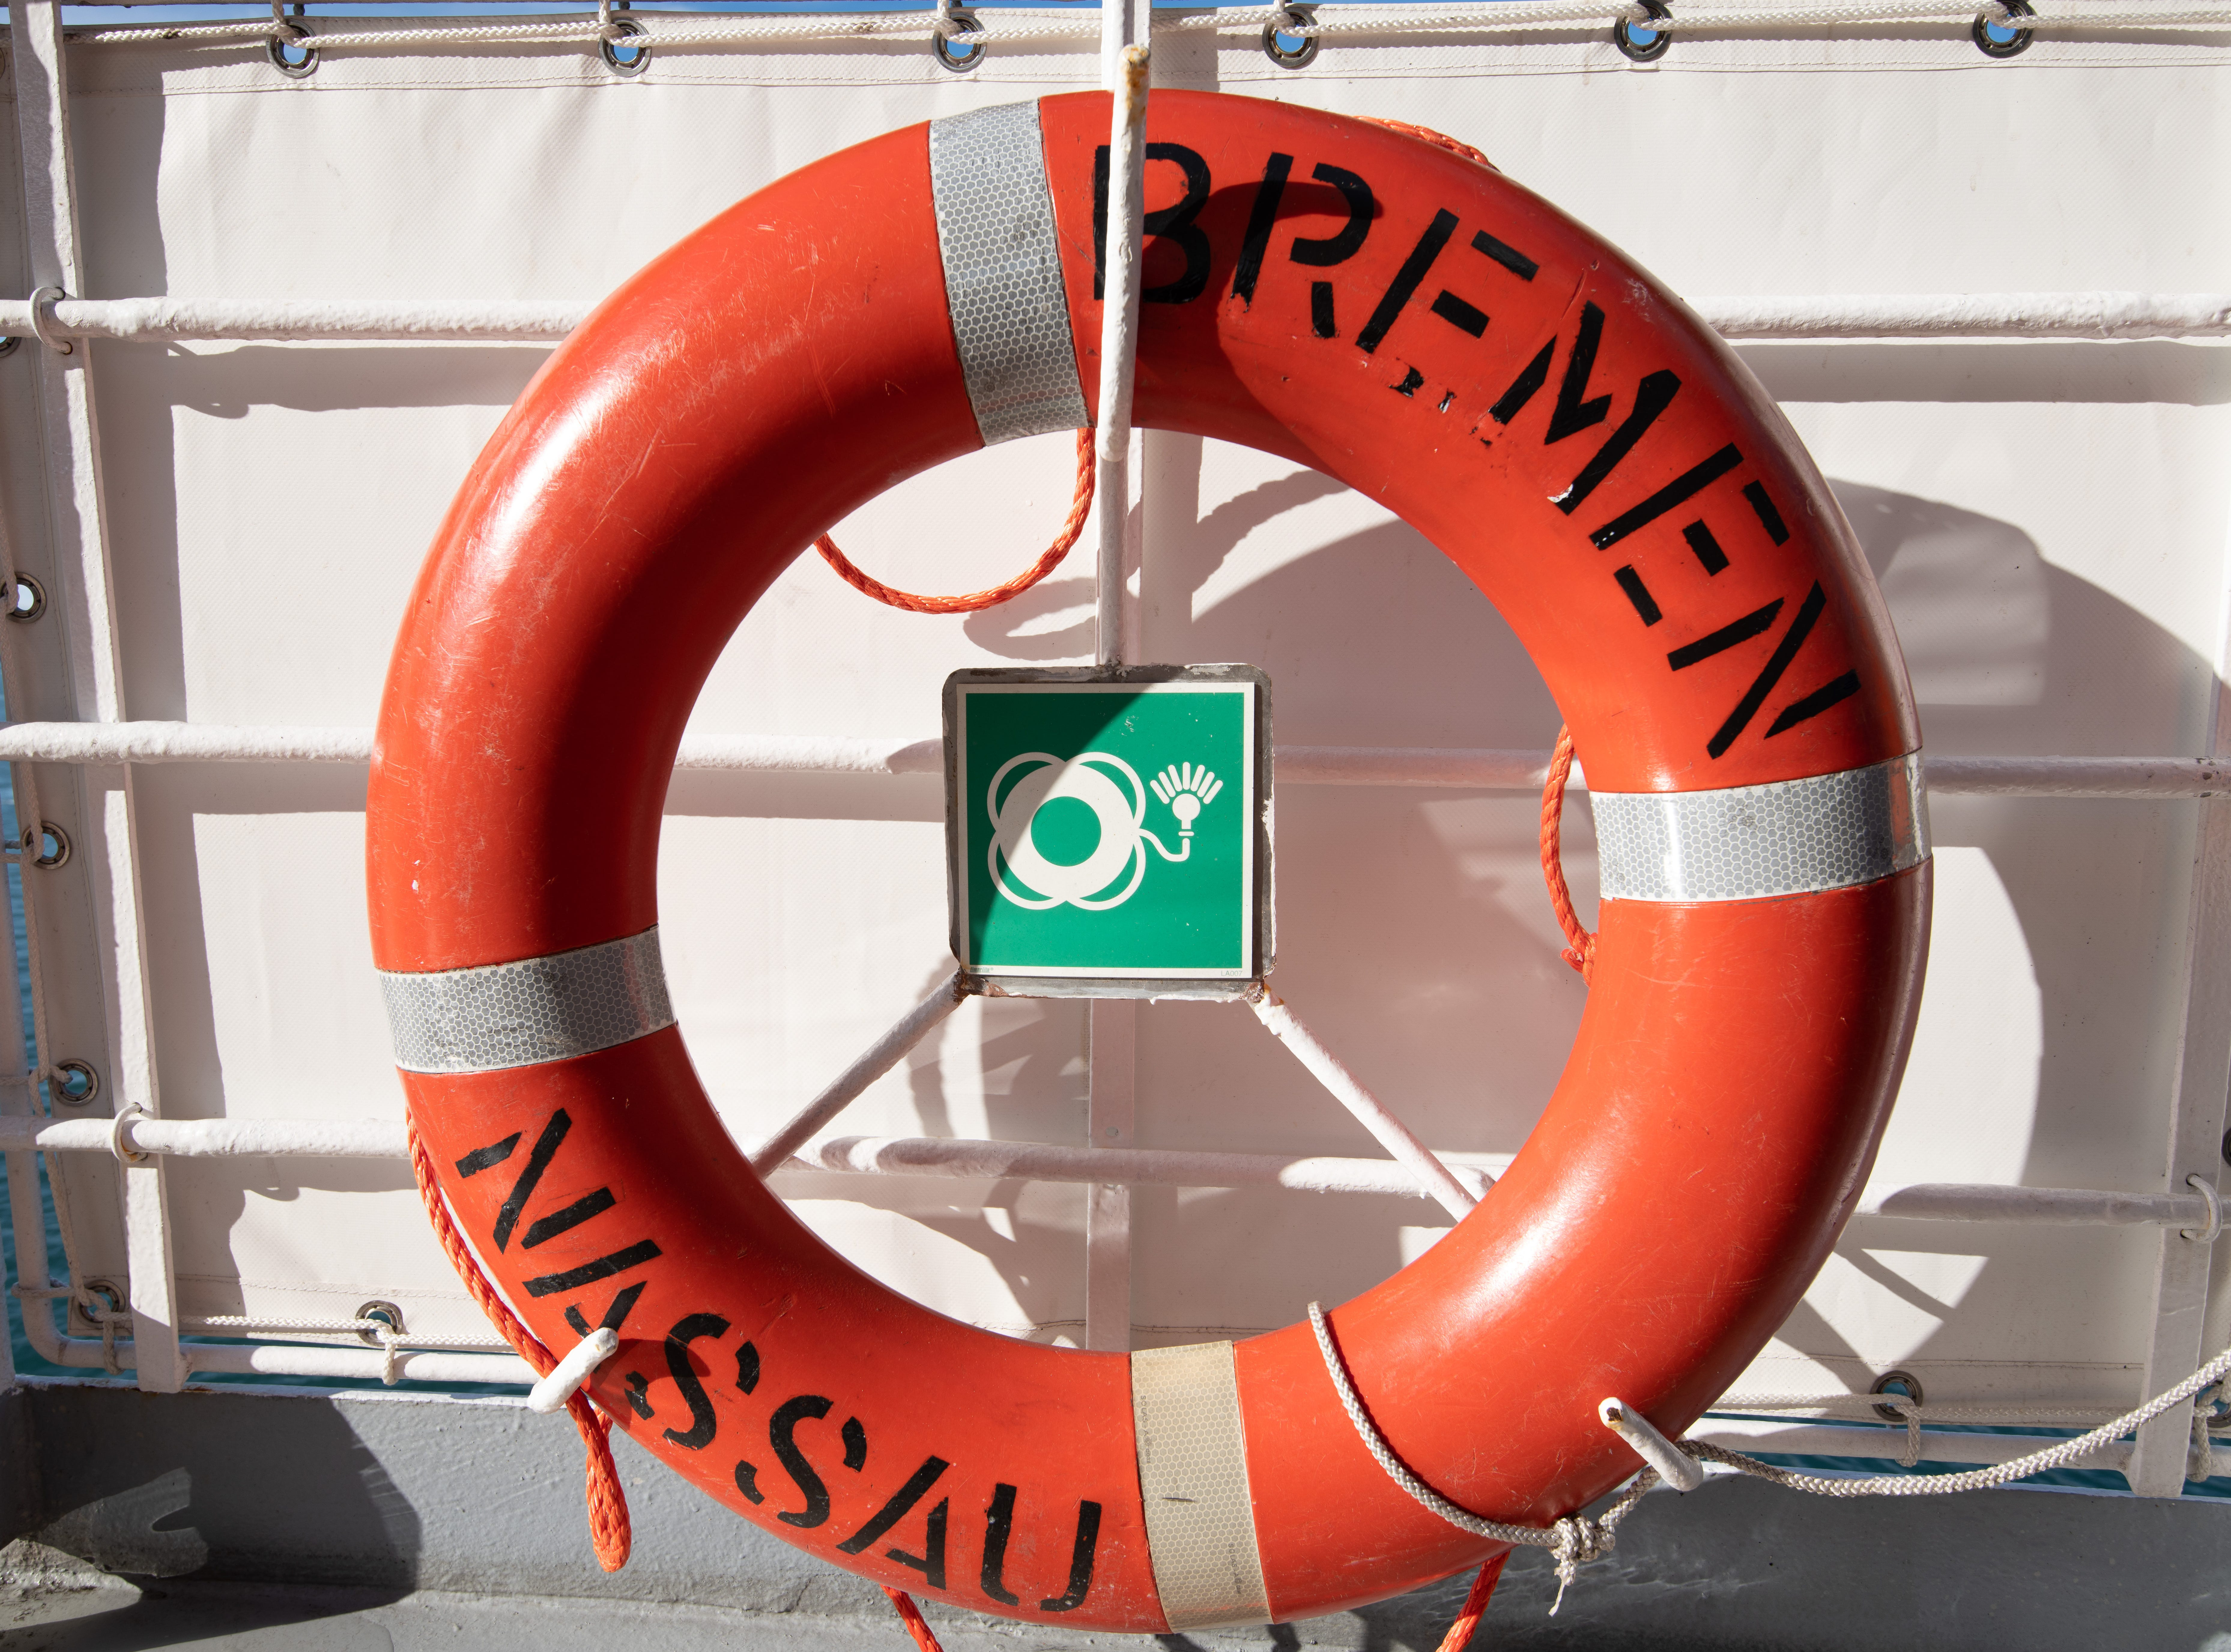 A life buoy along one of Bremen's outer decks.